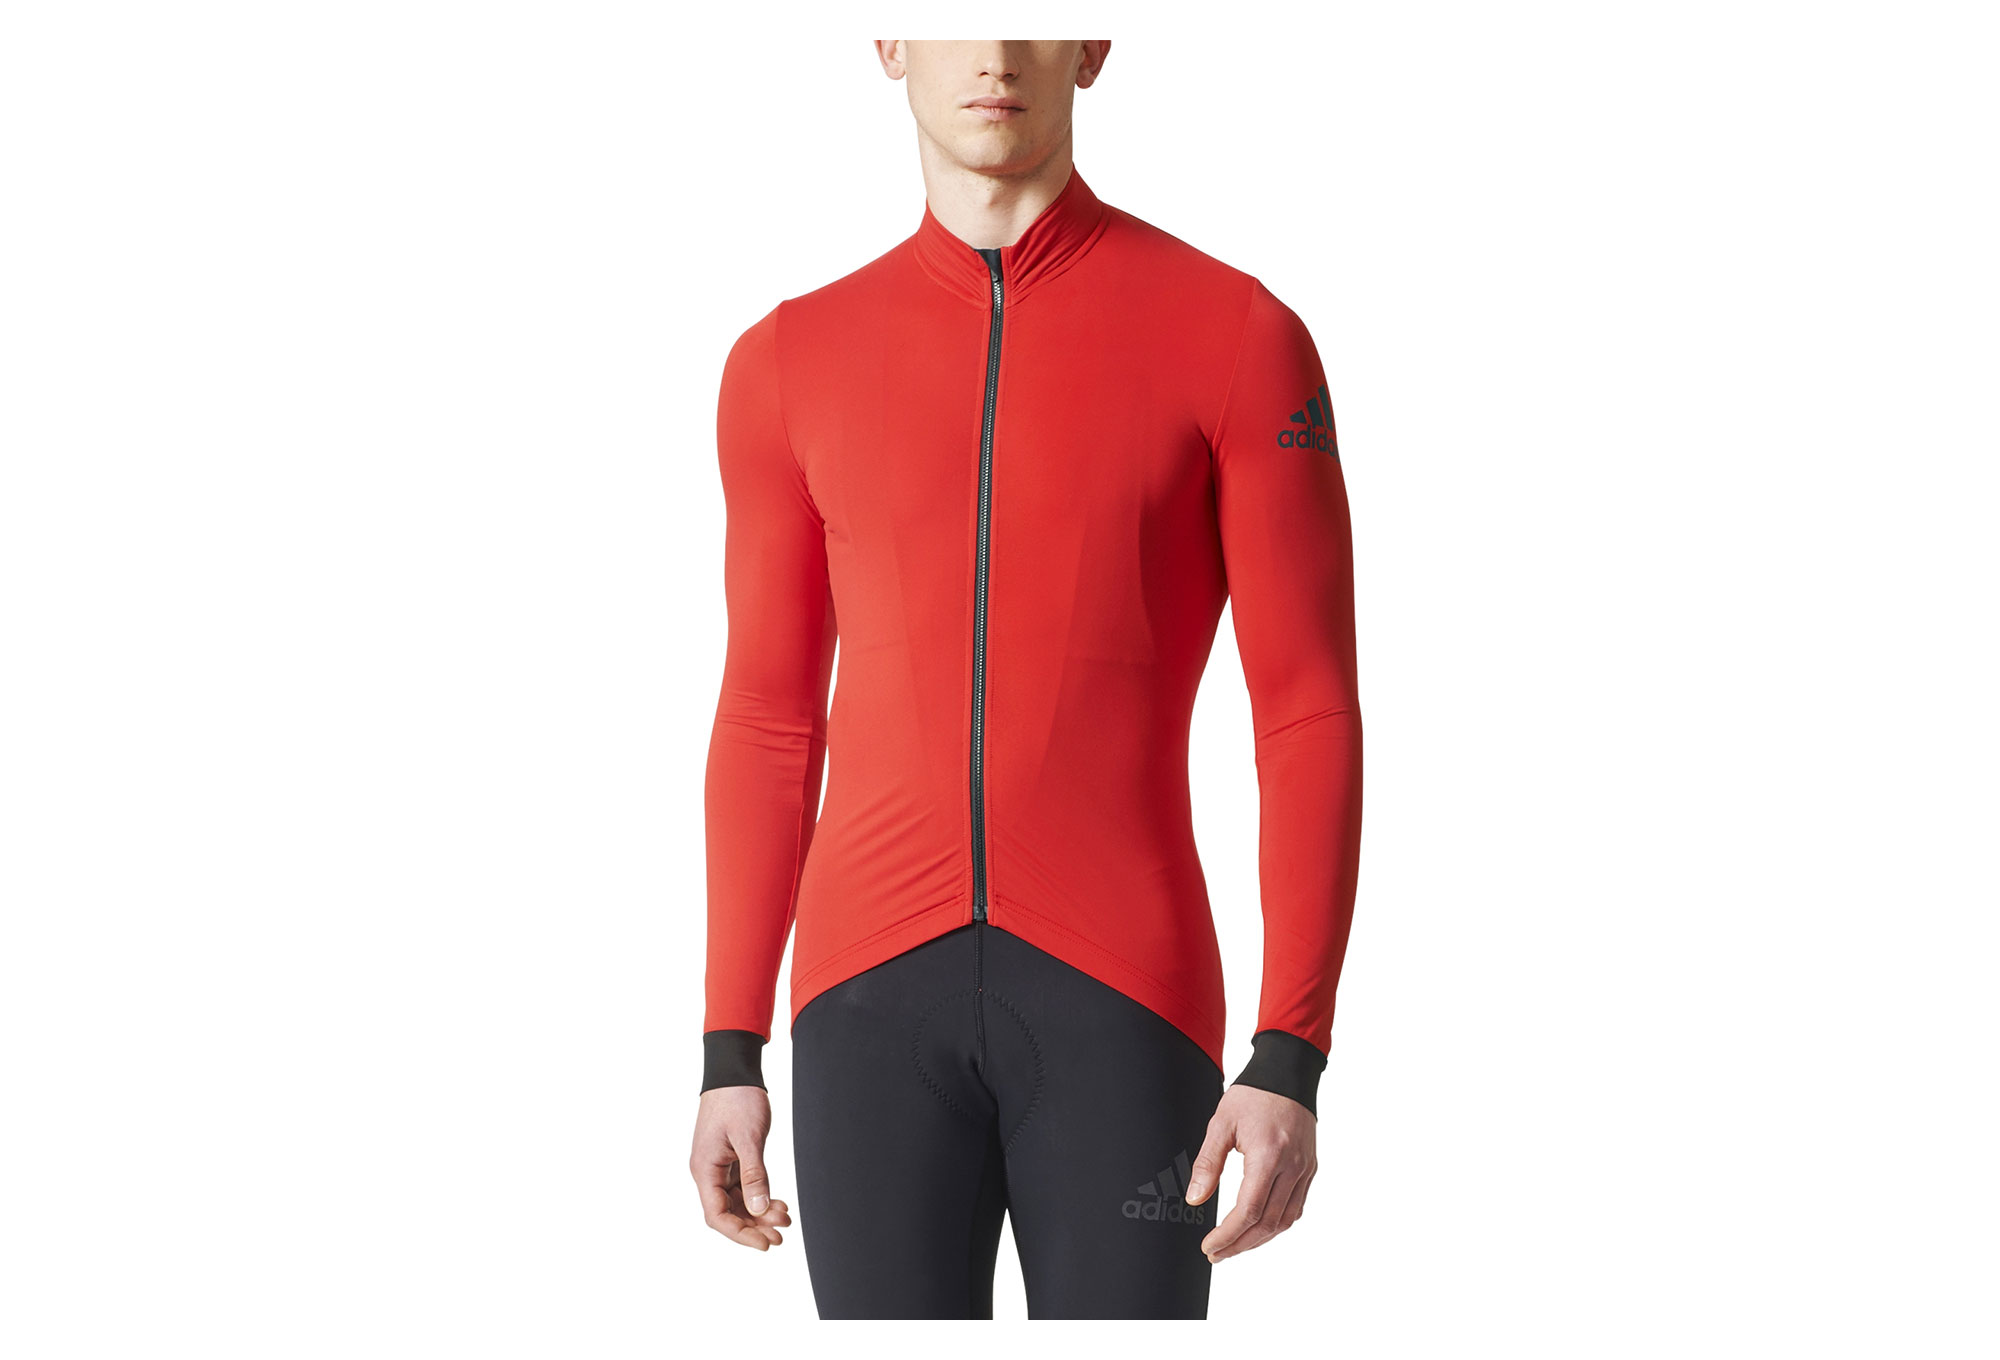 1a028930724 Maillot Manches Longues adidas cycling Climaheat Rouge Noir ...